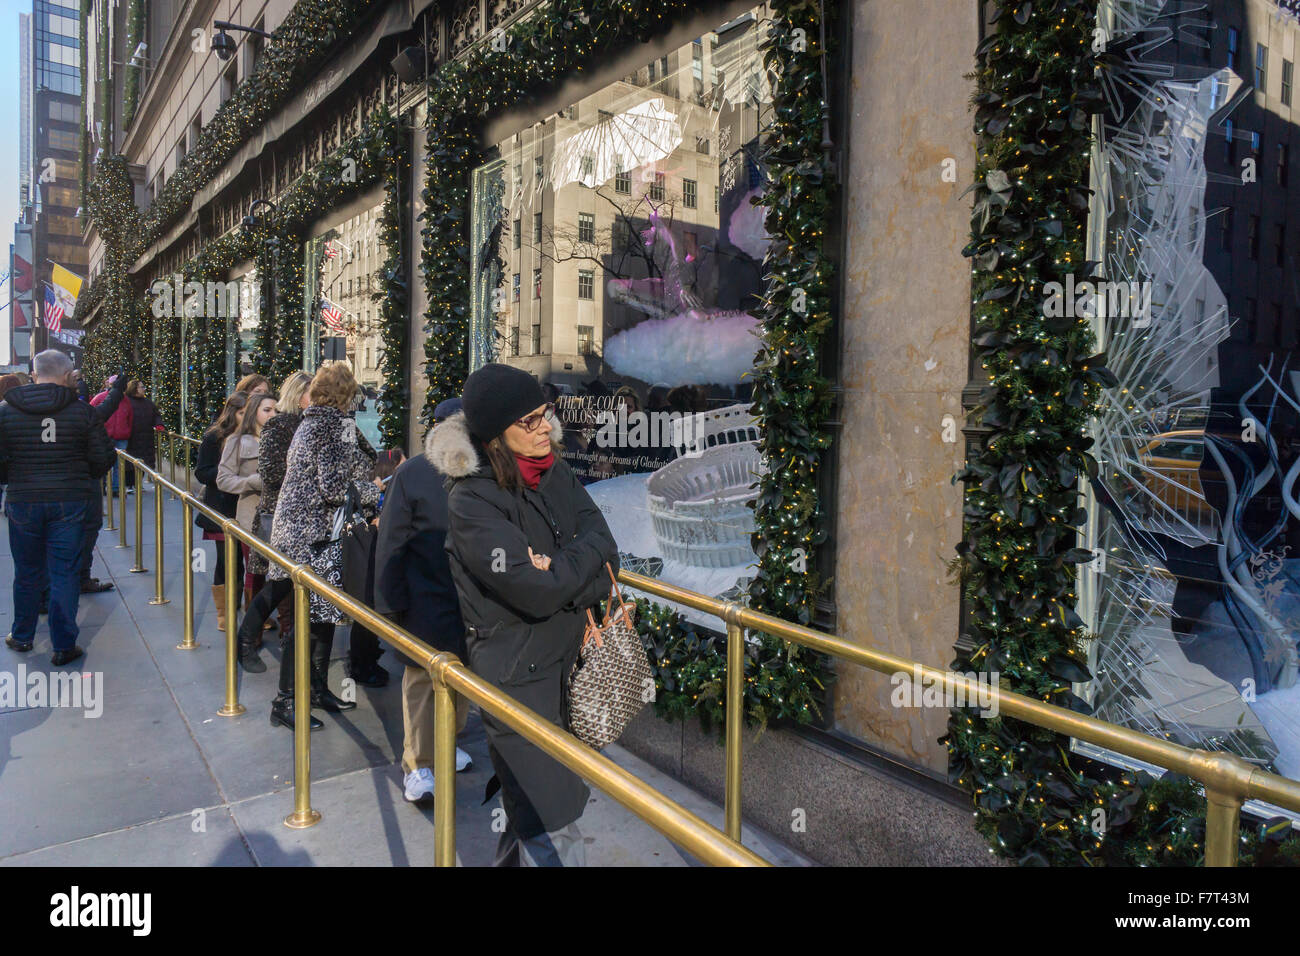 Shoppers view the Christmas windows of Saks Fifth Avenue in New York on 2015 new kitchens, 2015 new accessories, 2015 new dell desktops, 2015 new books, 2015 new browsers, 2015 new google chrome, 2015 new ipad, 2015 new foundation, 2015 new games, 2015 new wallpaper, 2015 new siding, 2015 new tools, 2015 new android smartphone, 2015 new toilets, 2015 new iphone, 2015 new mobile, 2015 new home, 2015 new software, 2015 new blackberry, 2015 new flowers,